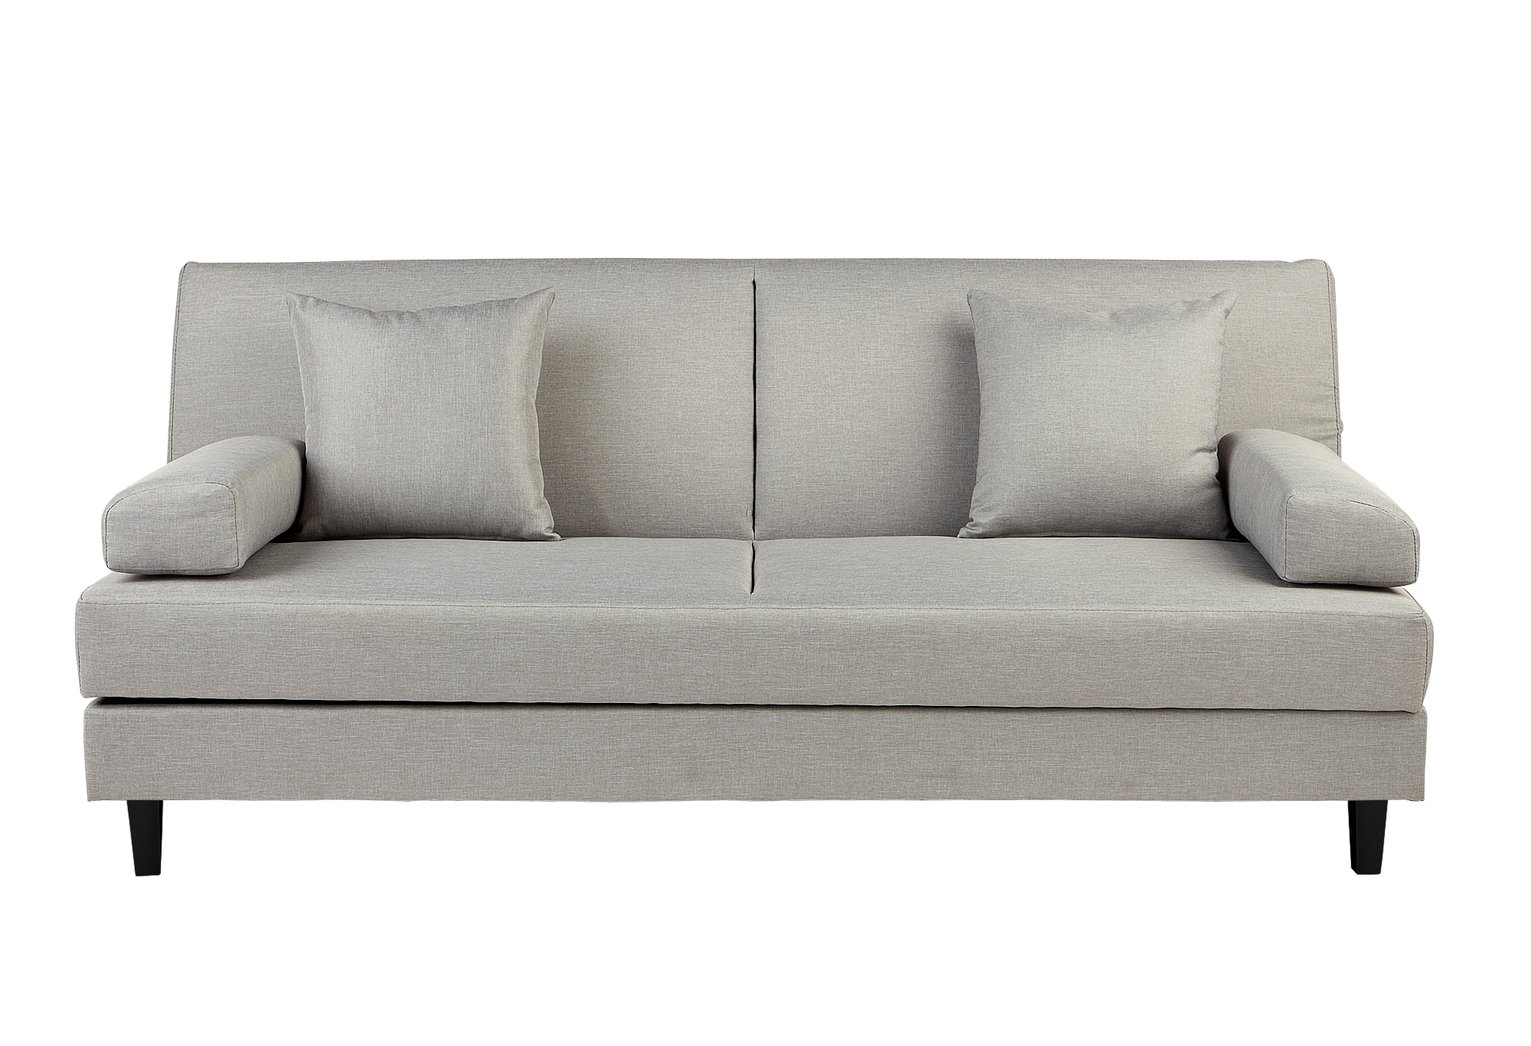 Argos Home Chase Fabric Clic Clac Sofa Bed - Light Grey